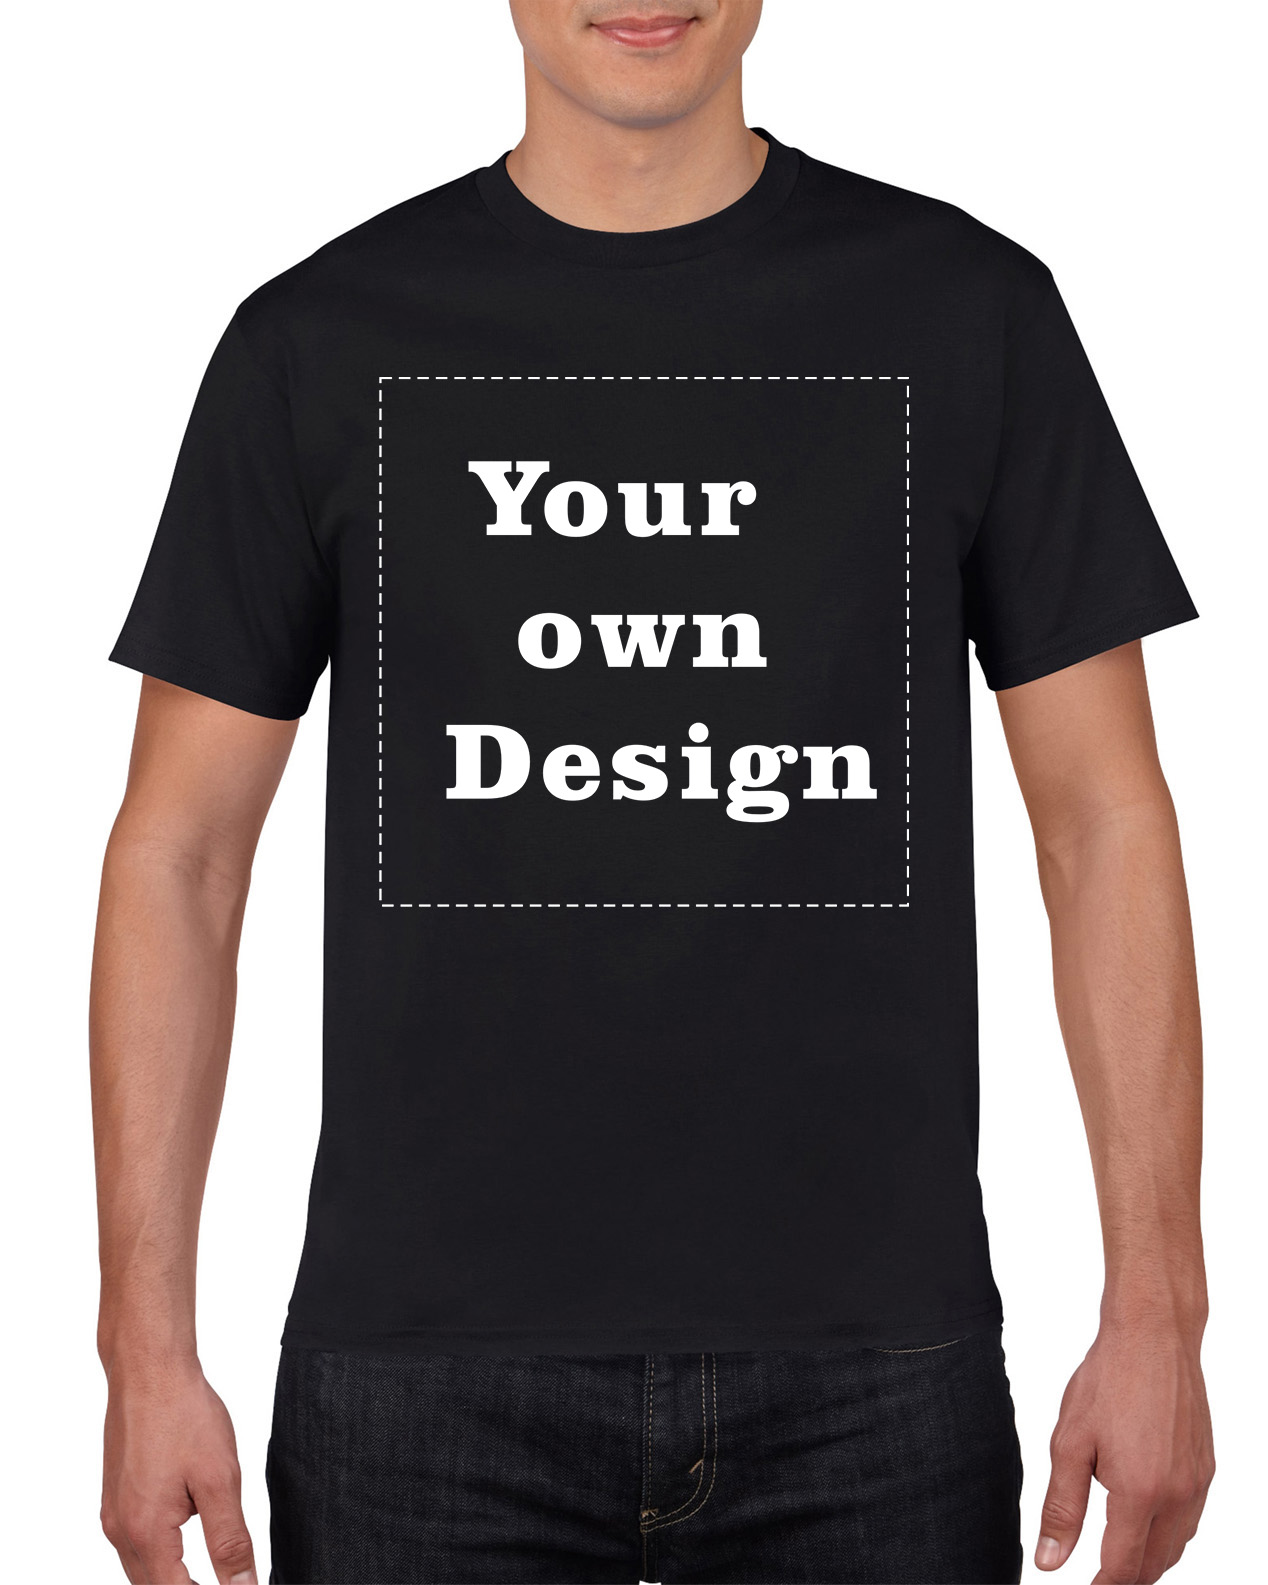 Customized black men 39 s t shirt print your own design high Printing your own t shirts